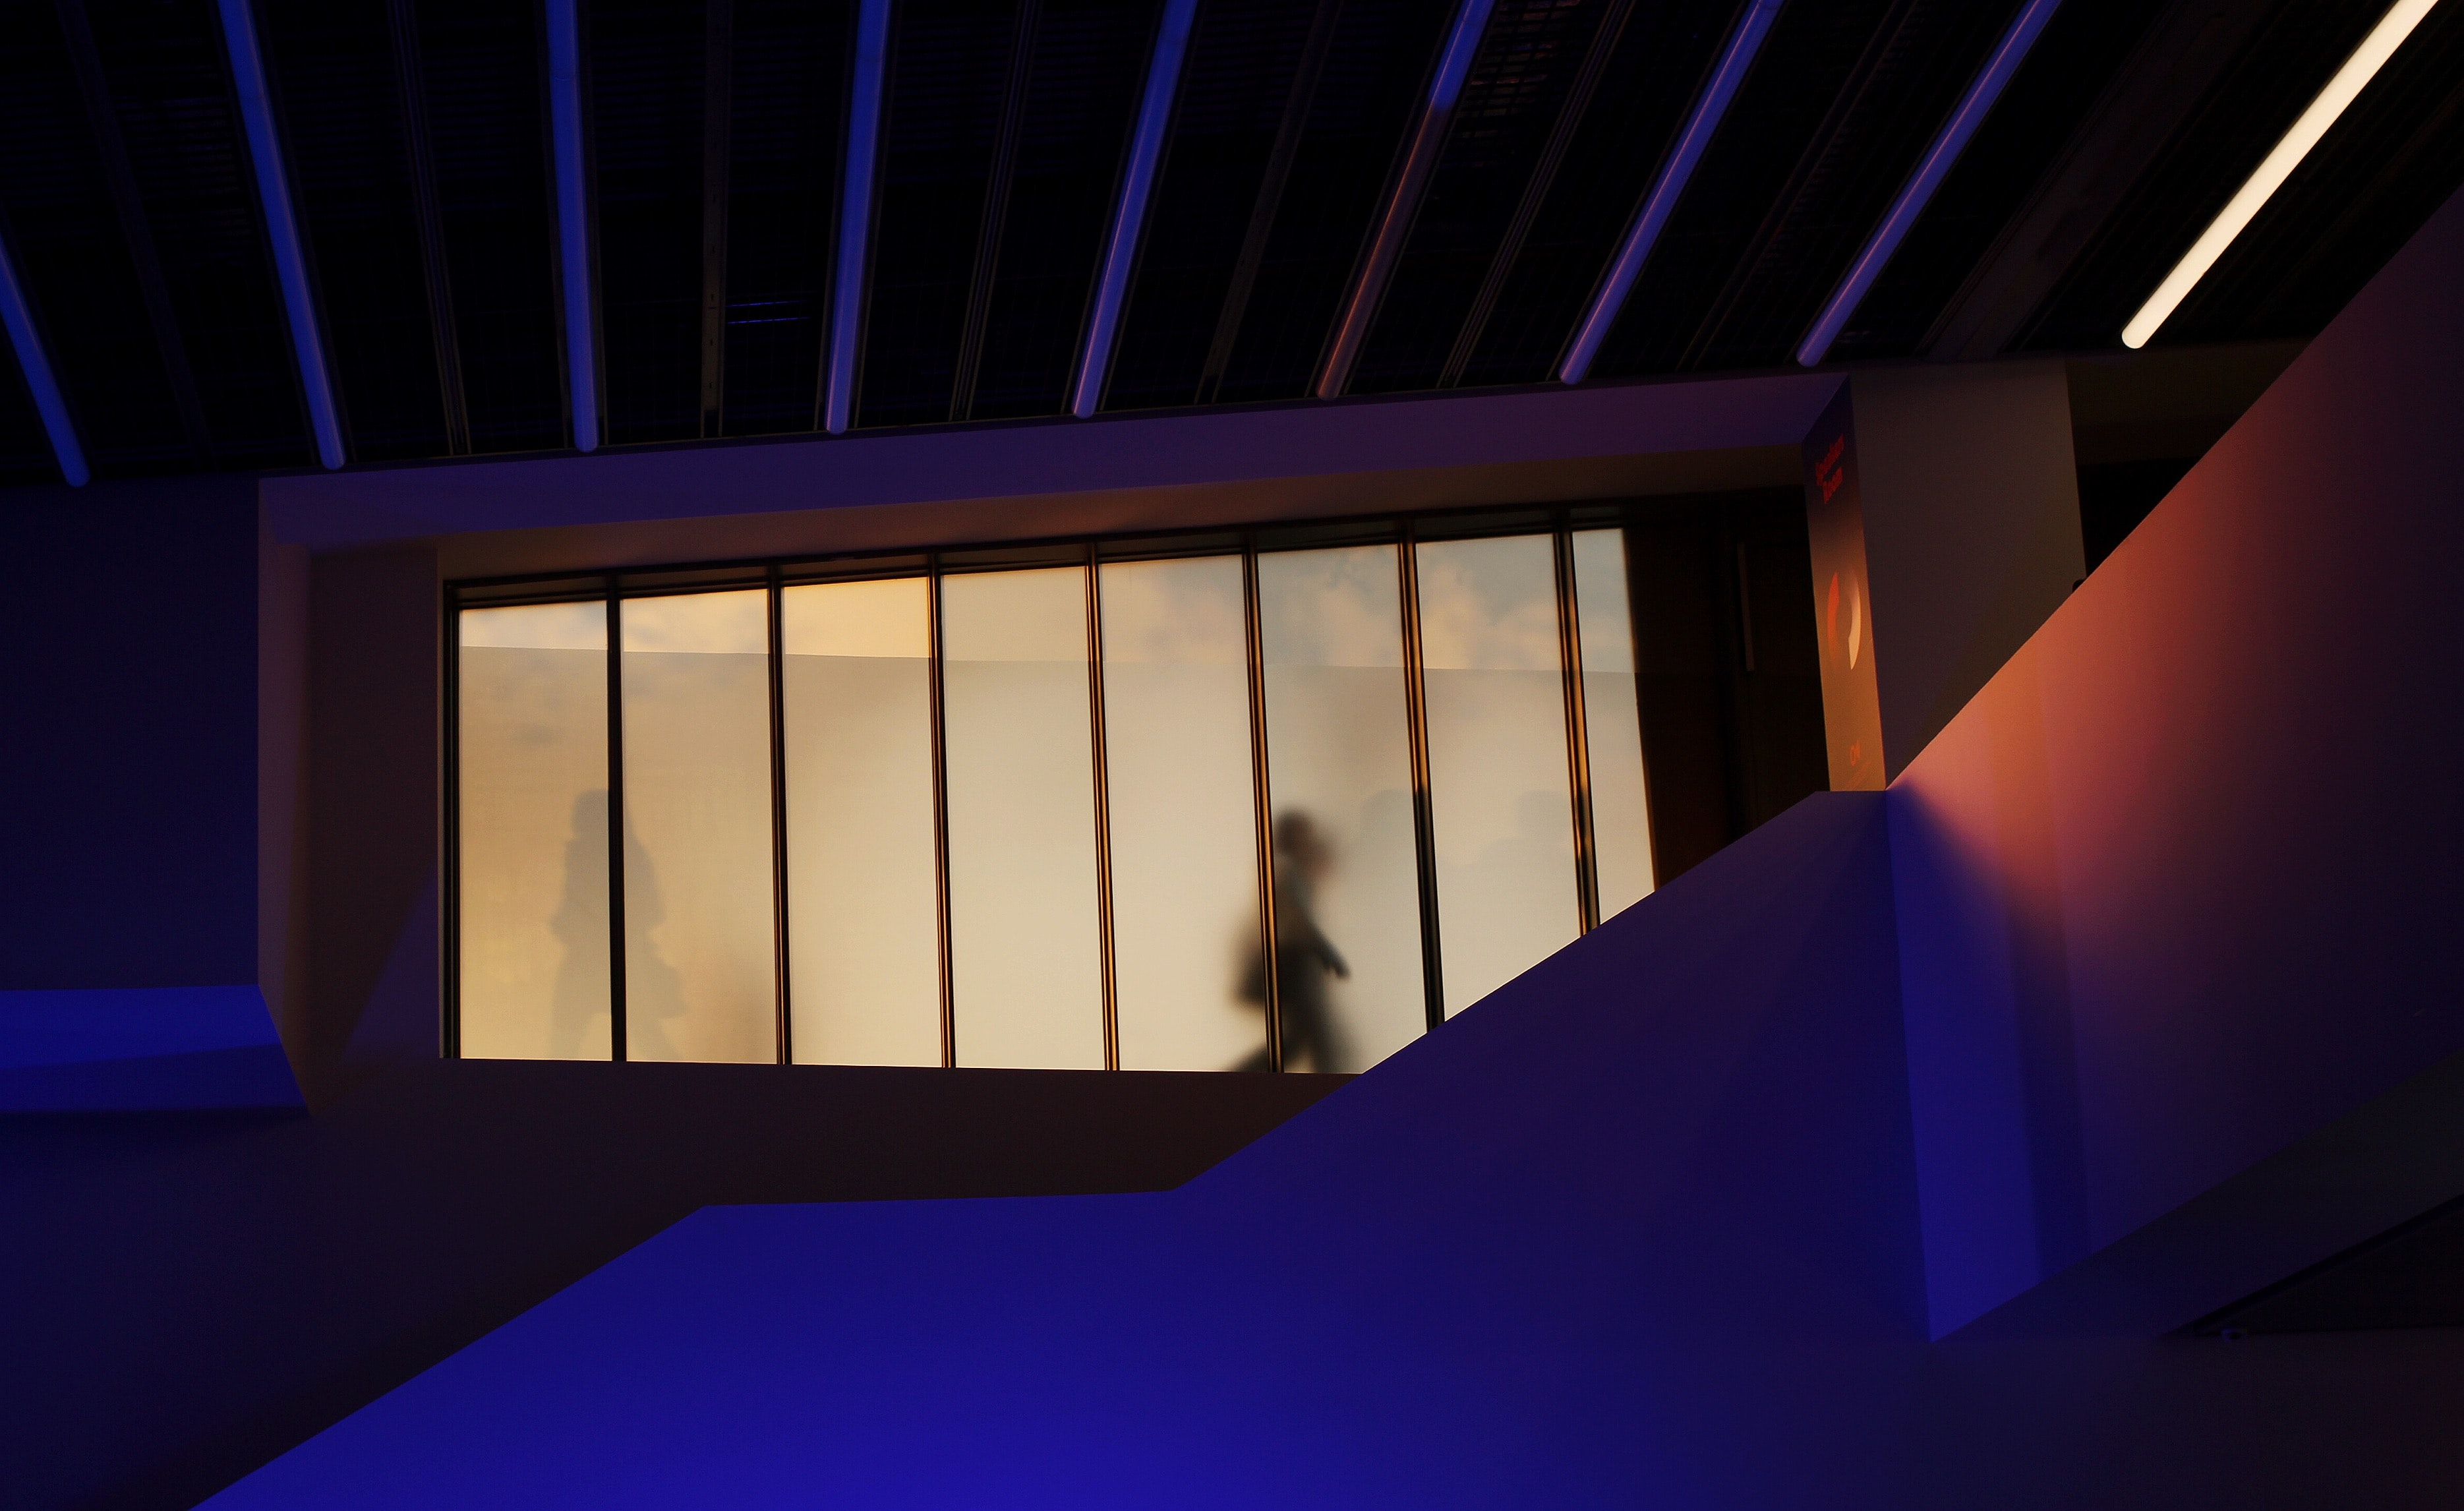 silhouette of two person beyond glass walking on pathway